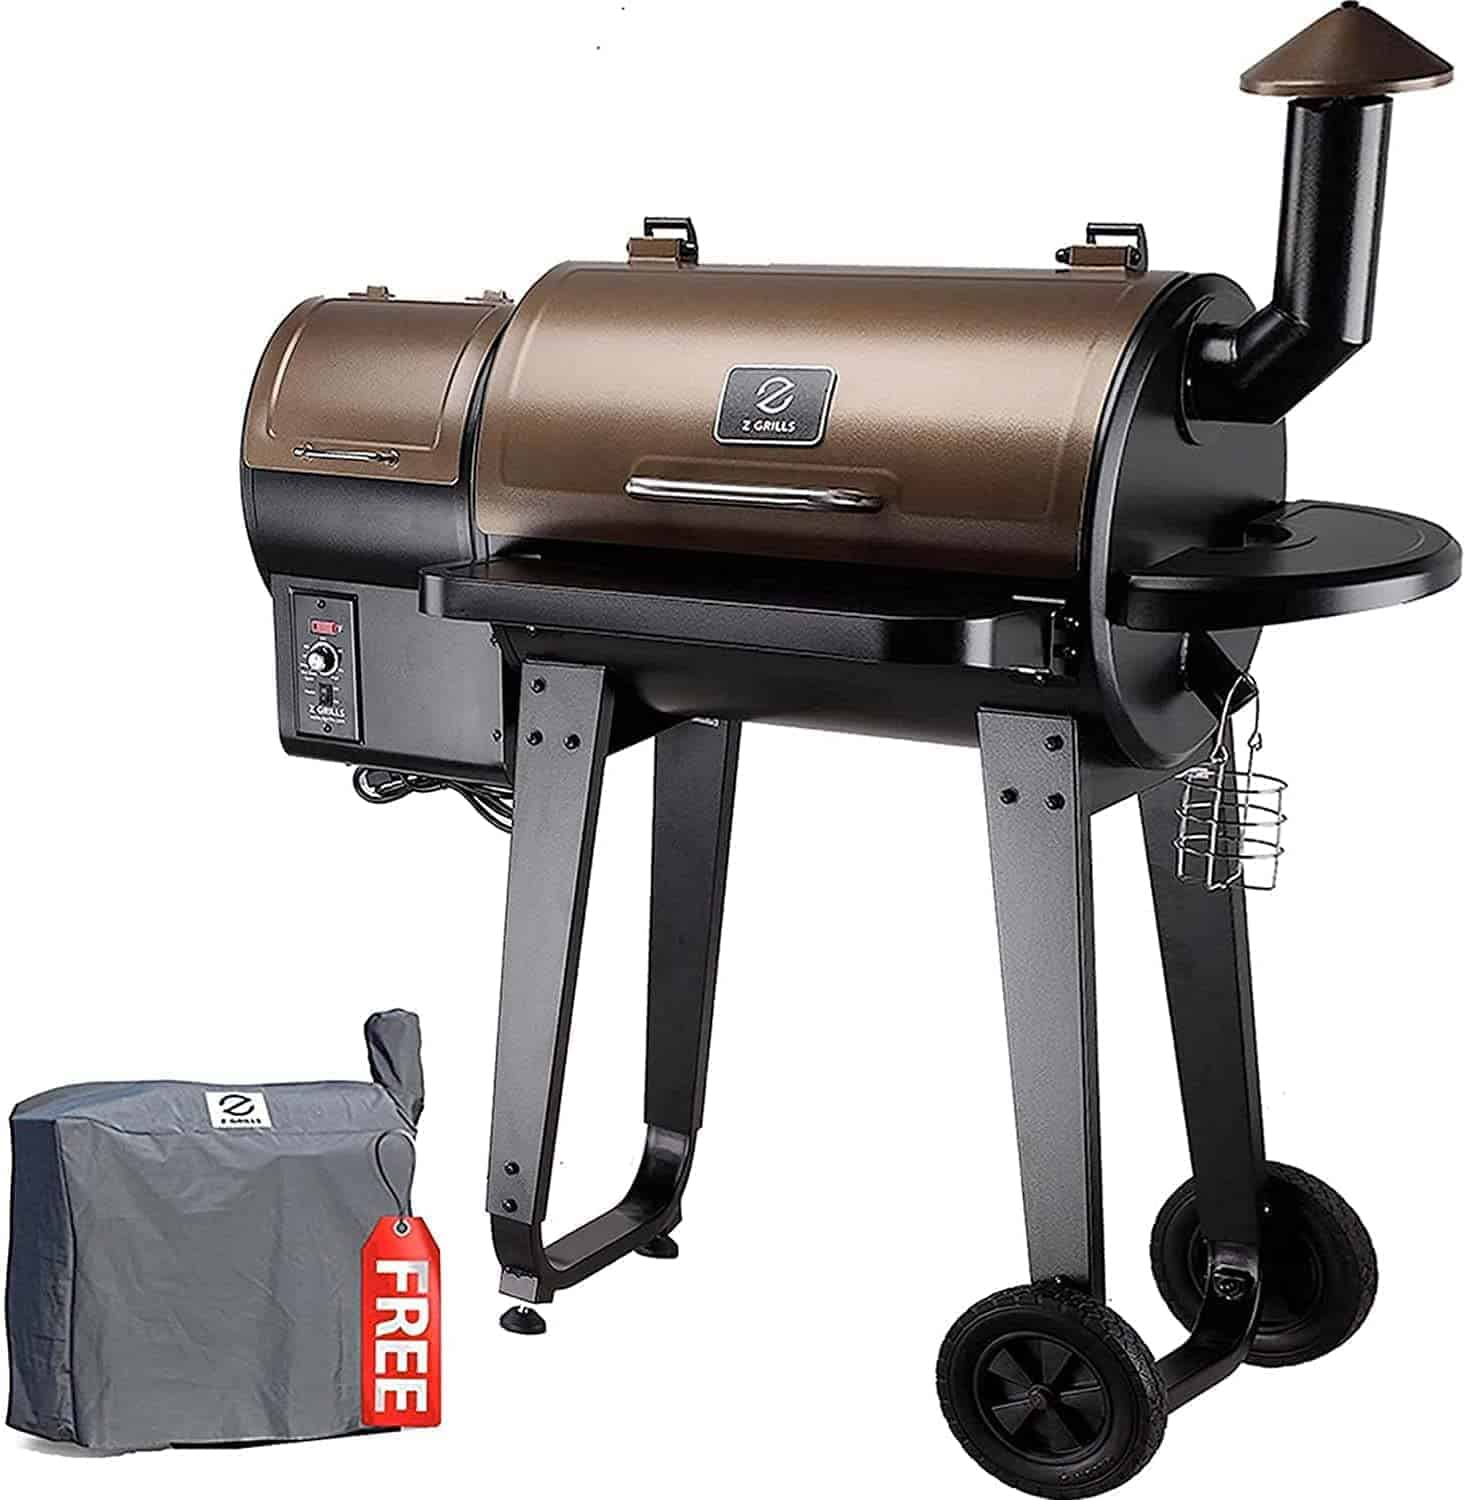 Z Grills Wood Pellet Grill and Smoker Combo - everymanscave.com